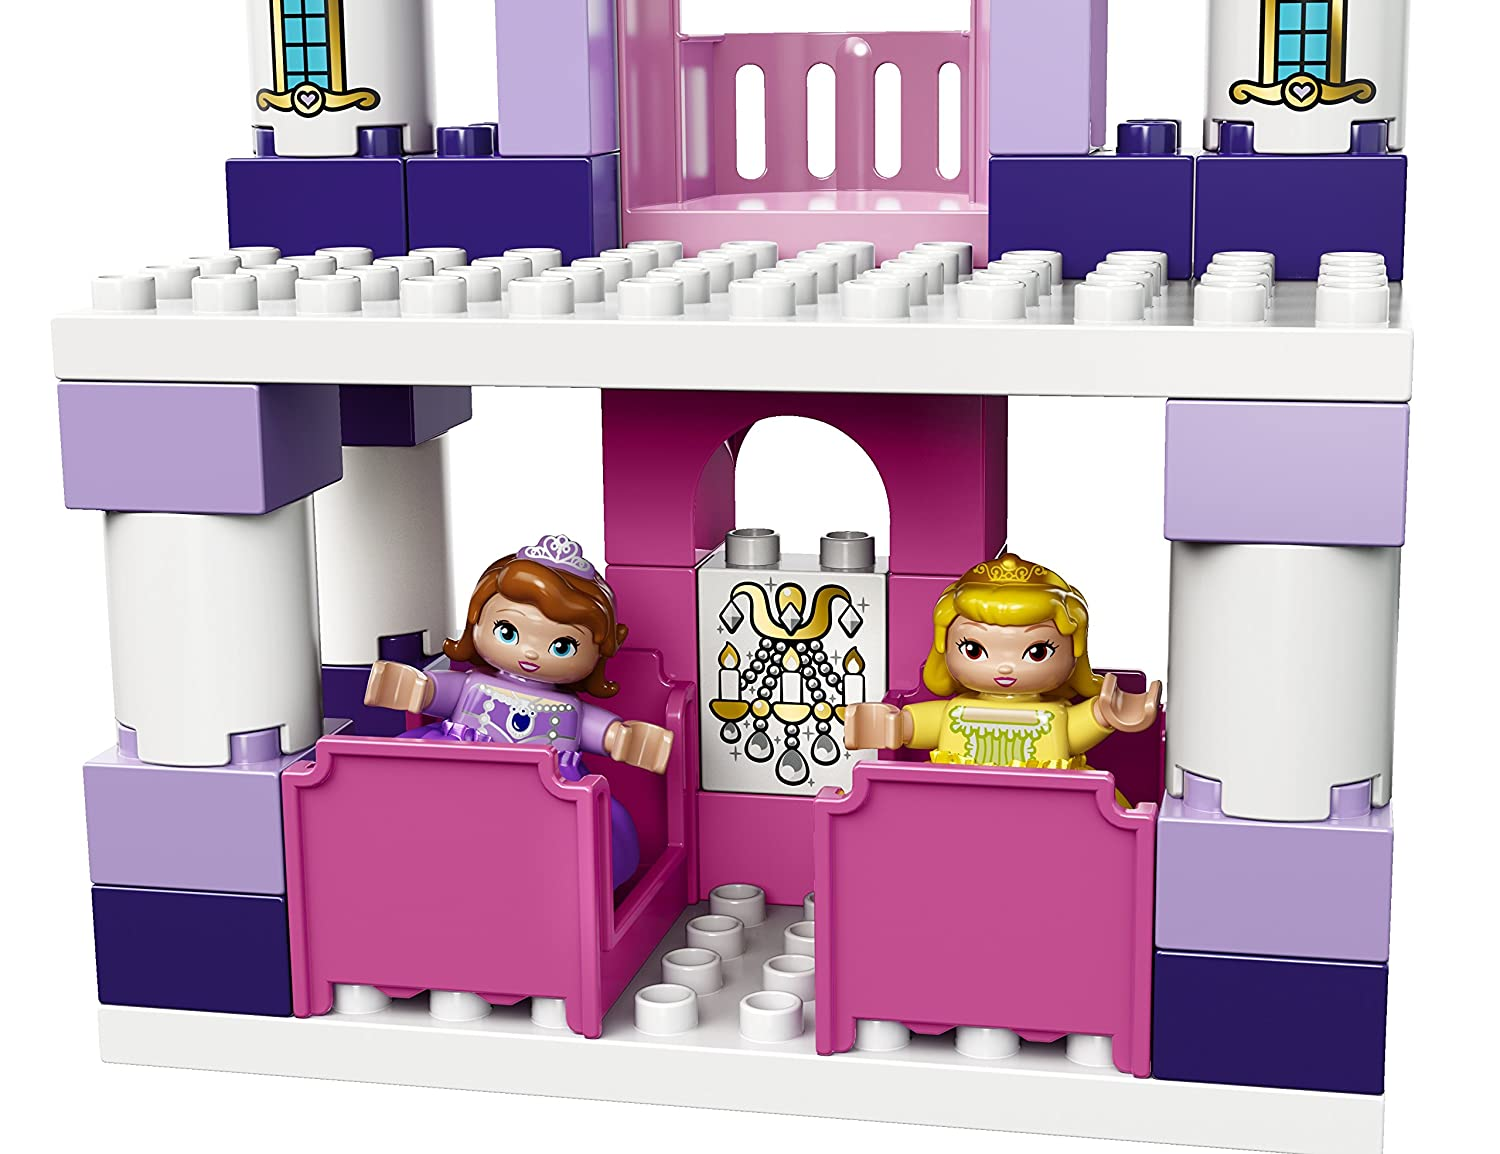 Lego Duplo Sofia The First Royal Castle 10595 Figures Amazon